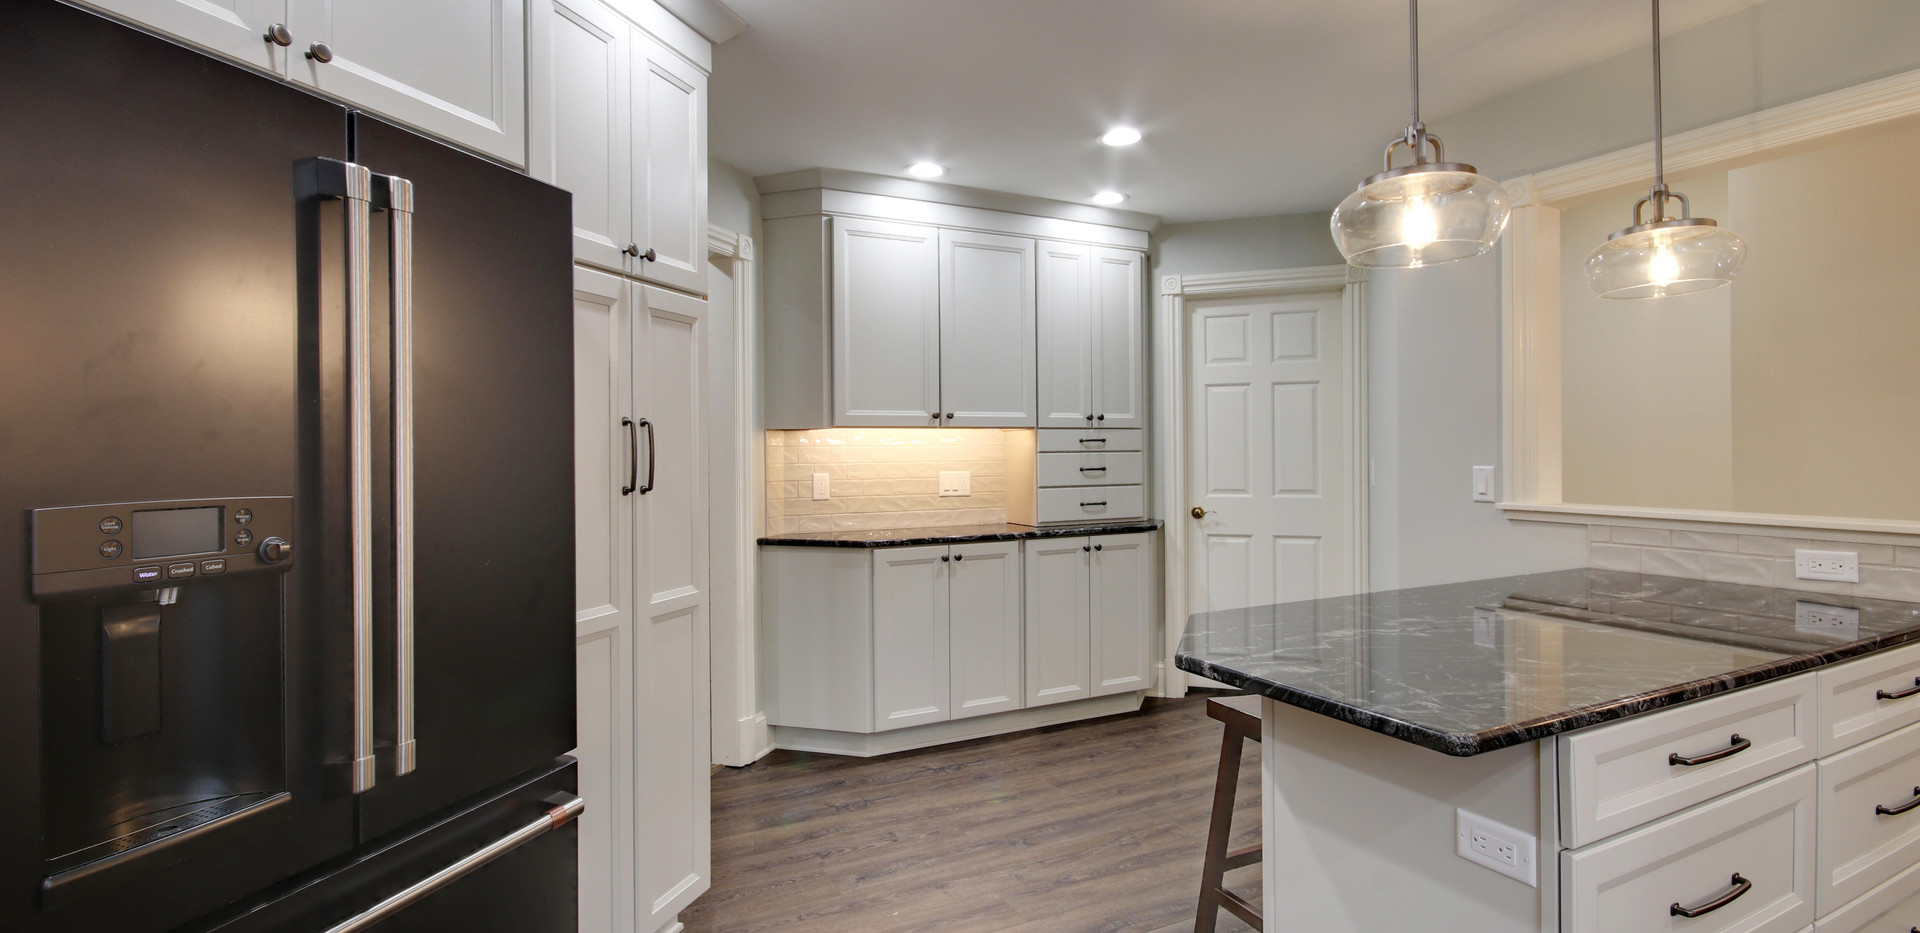 Modern design kitchen remodel in Jenison